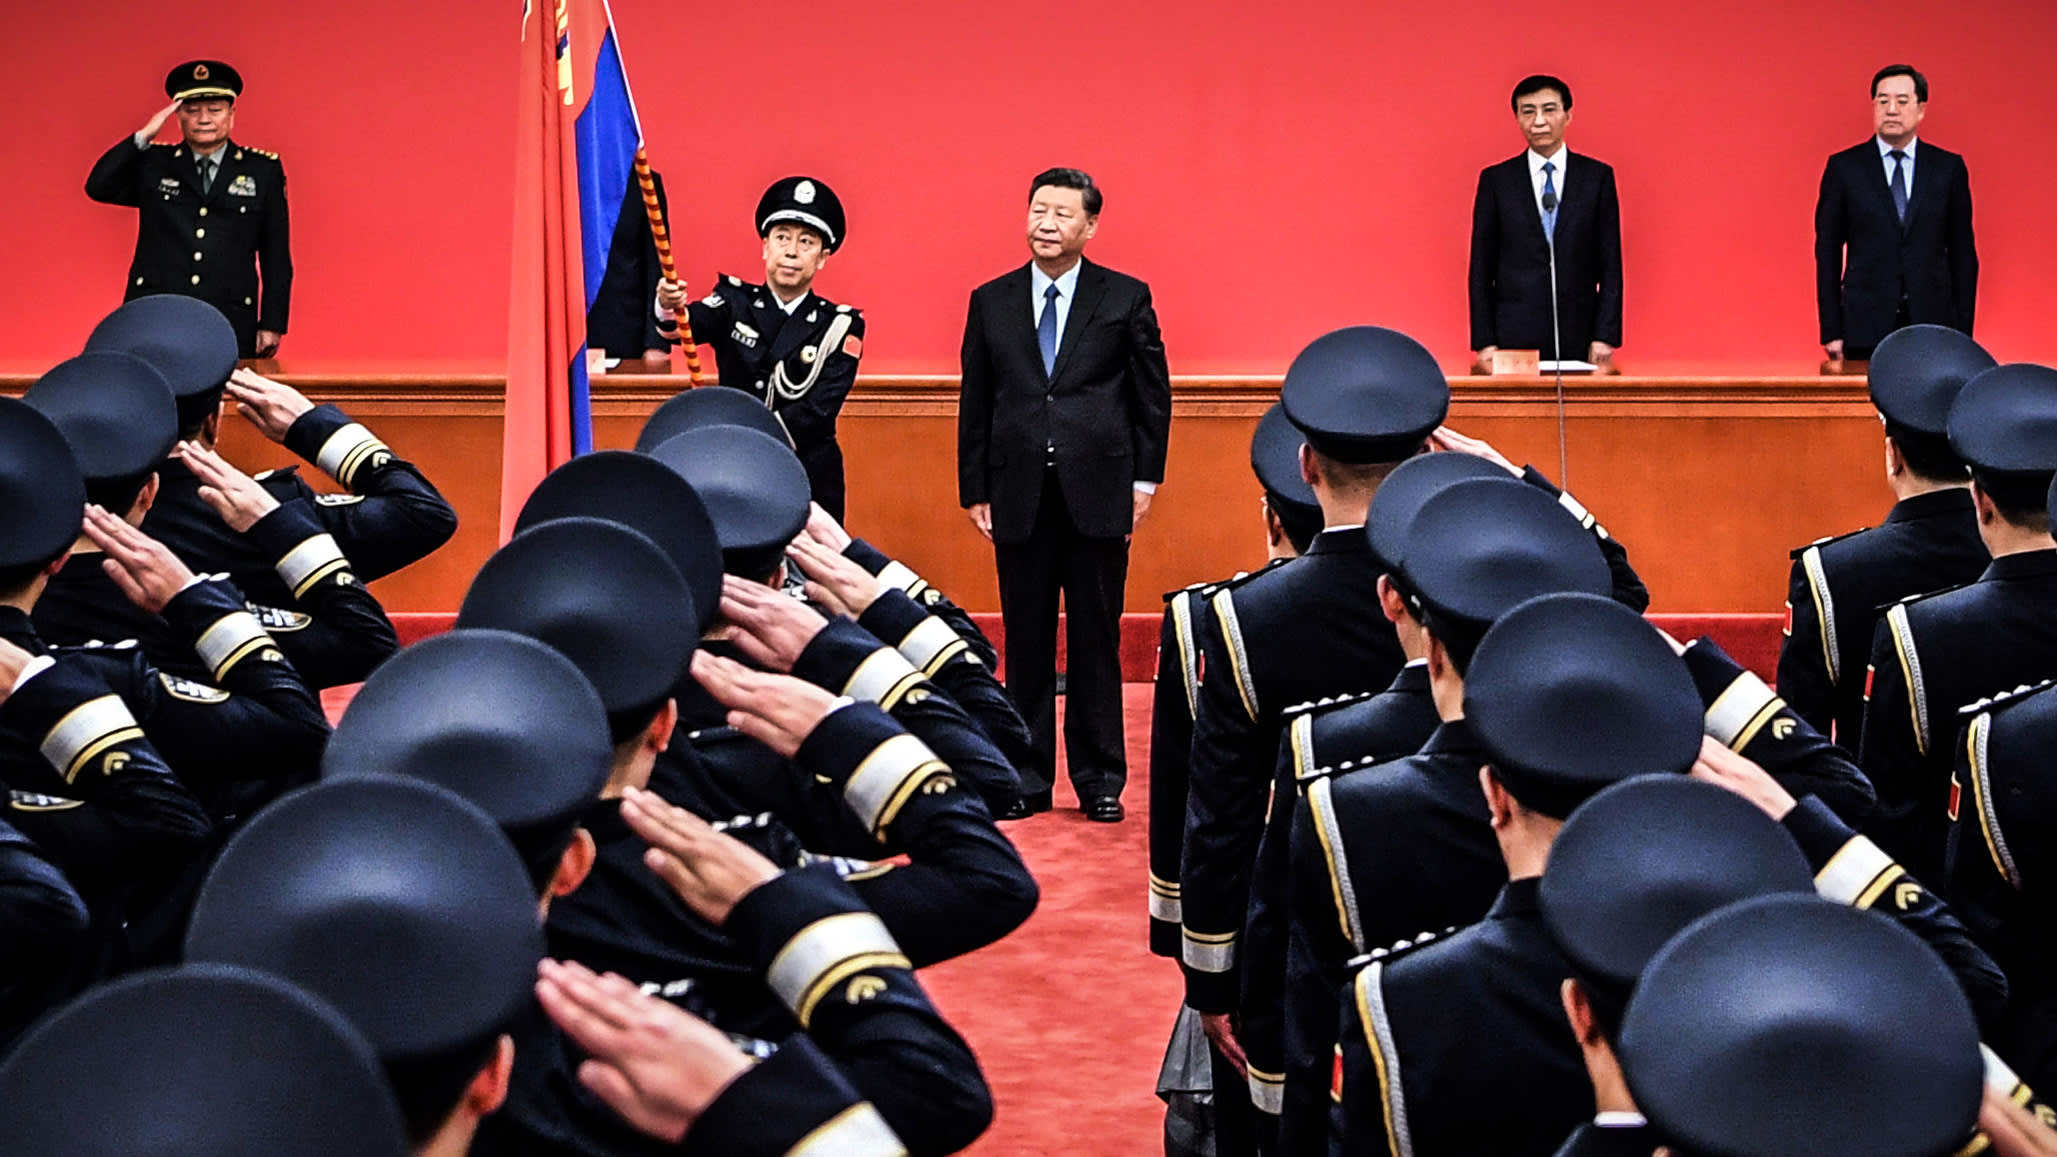 China Officials Run For Cover As Xi Jinping Prepares Another Brutal Purge Nikkei Asia